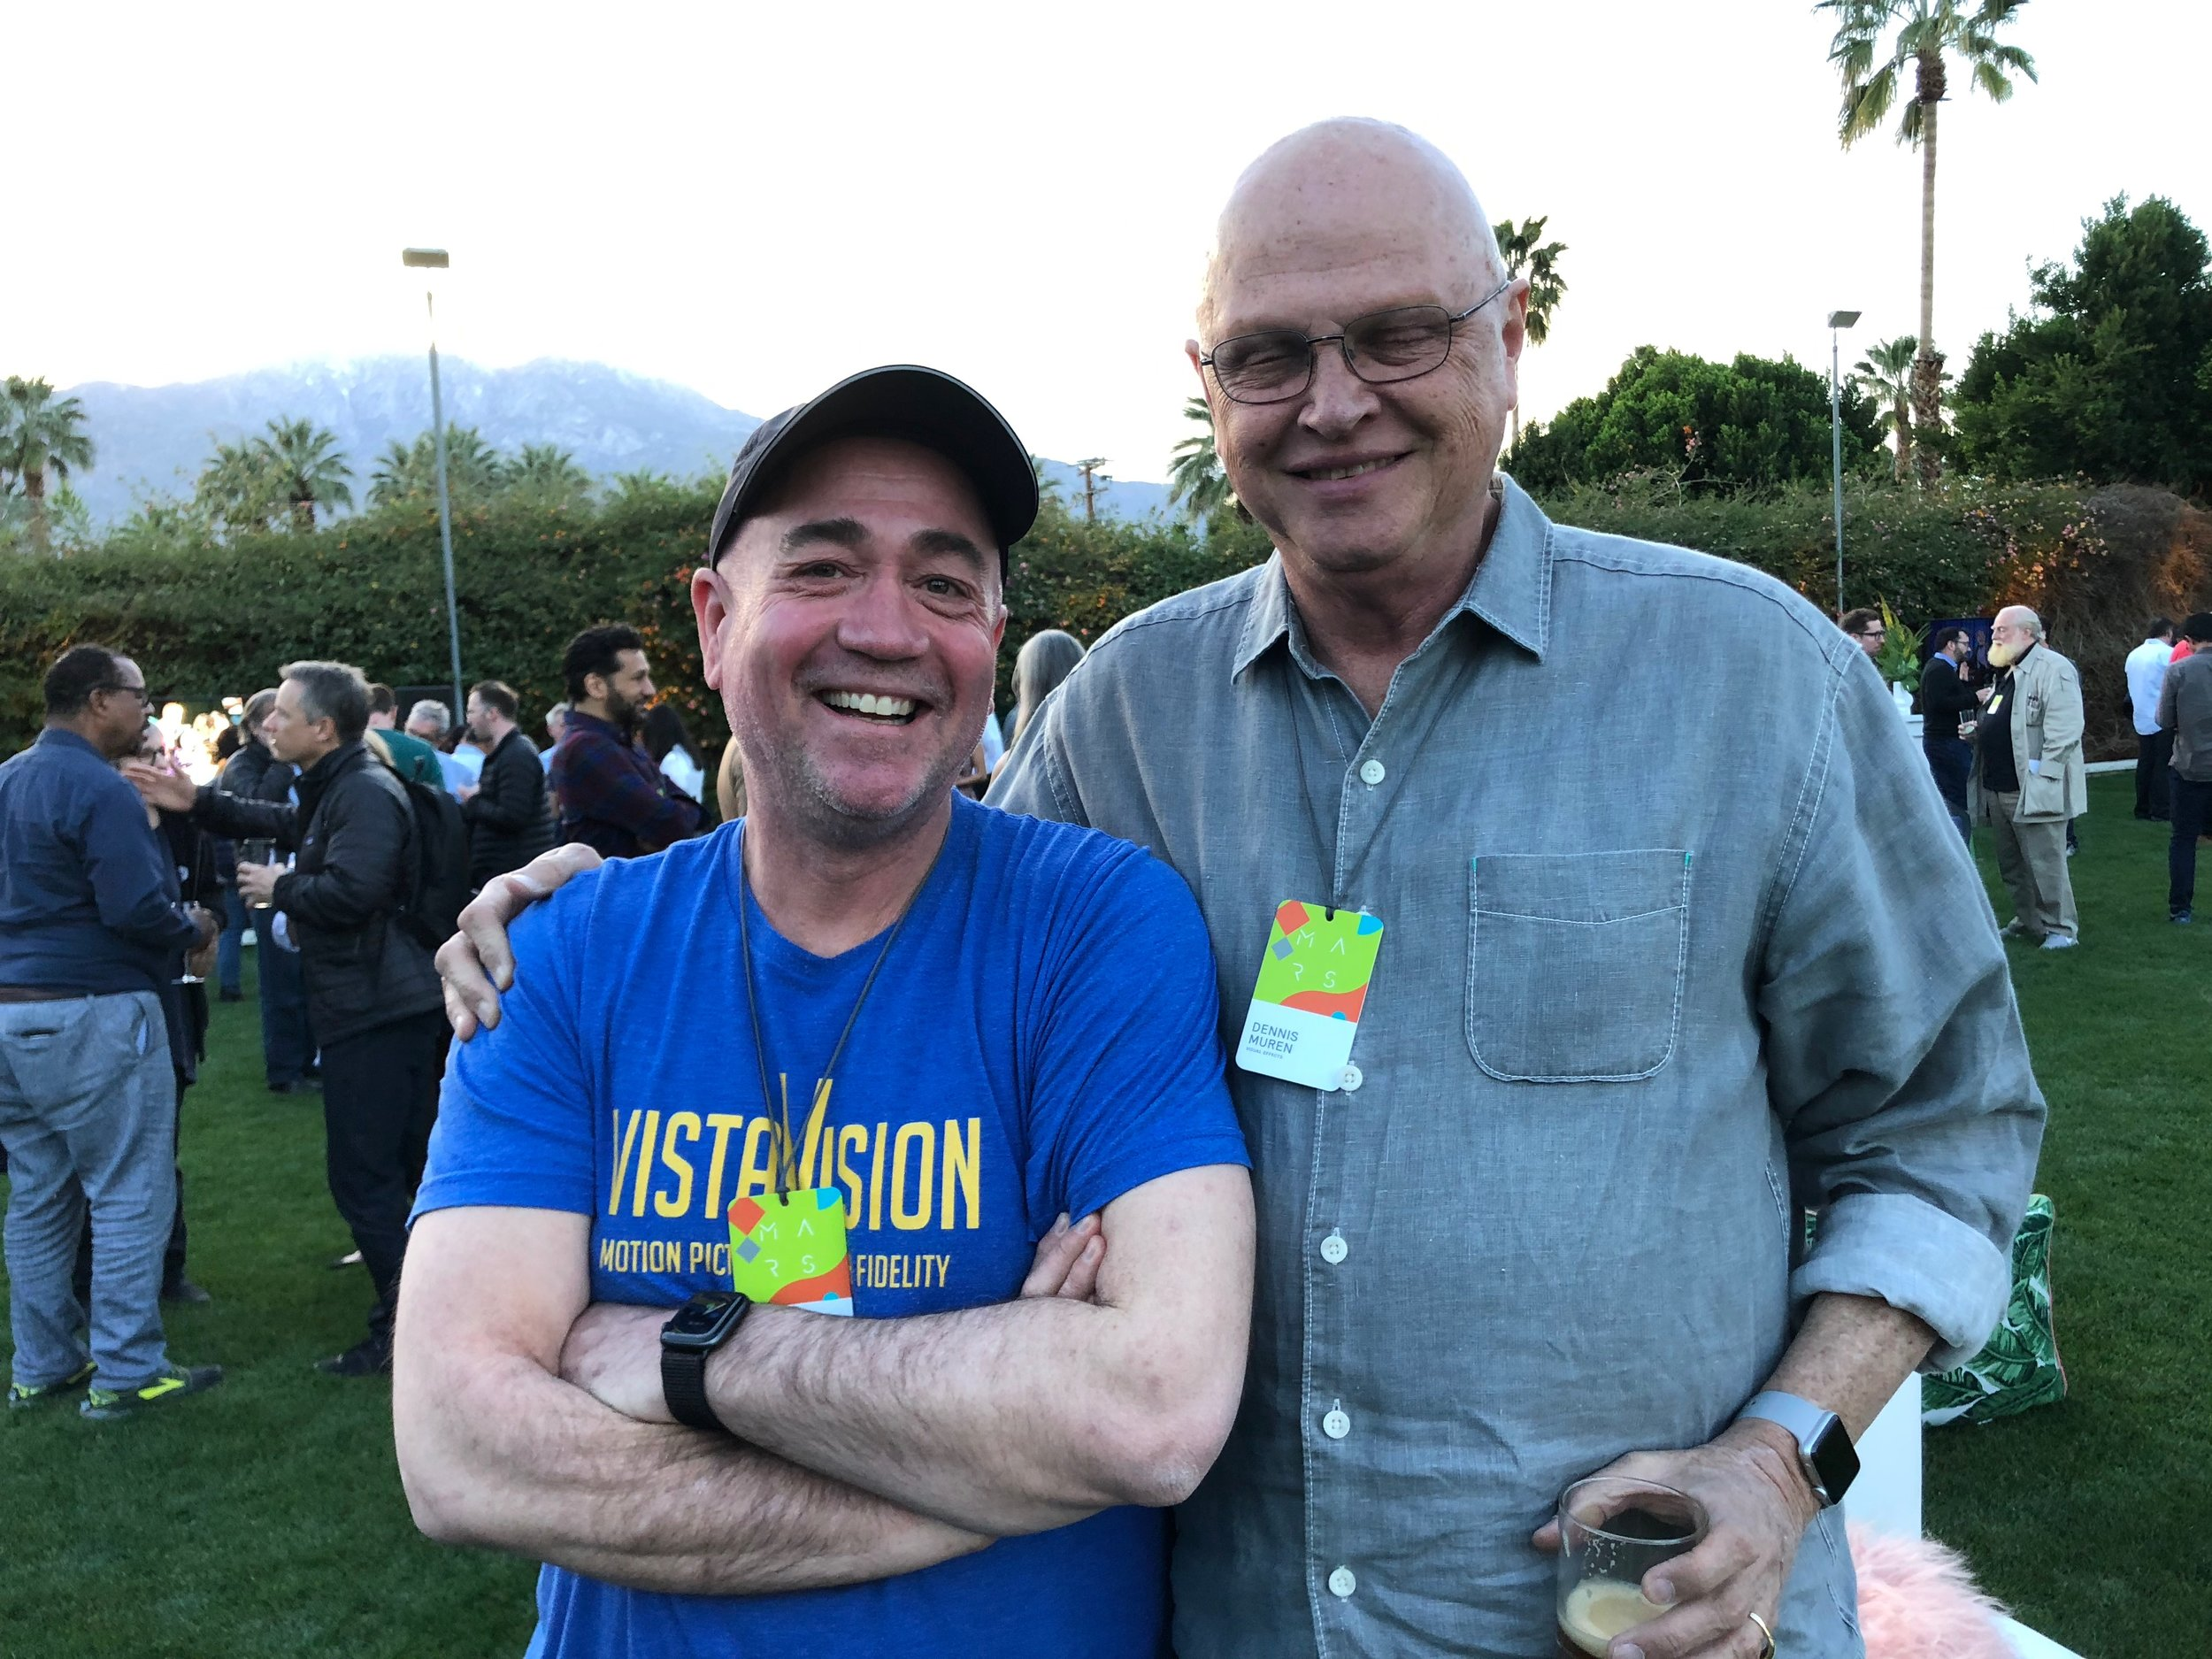 Hanging out with my friend, former ILM colleague, and childhood hero, Dennis Muren.